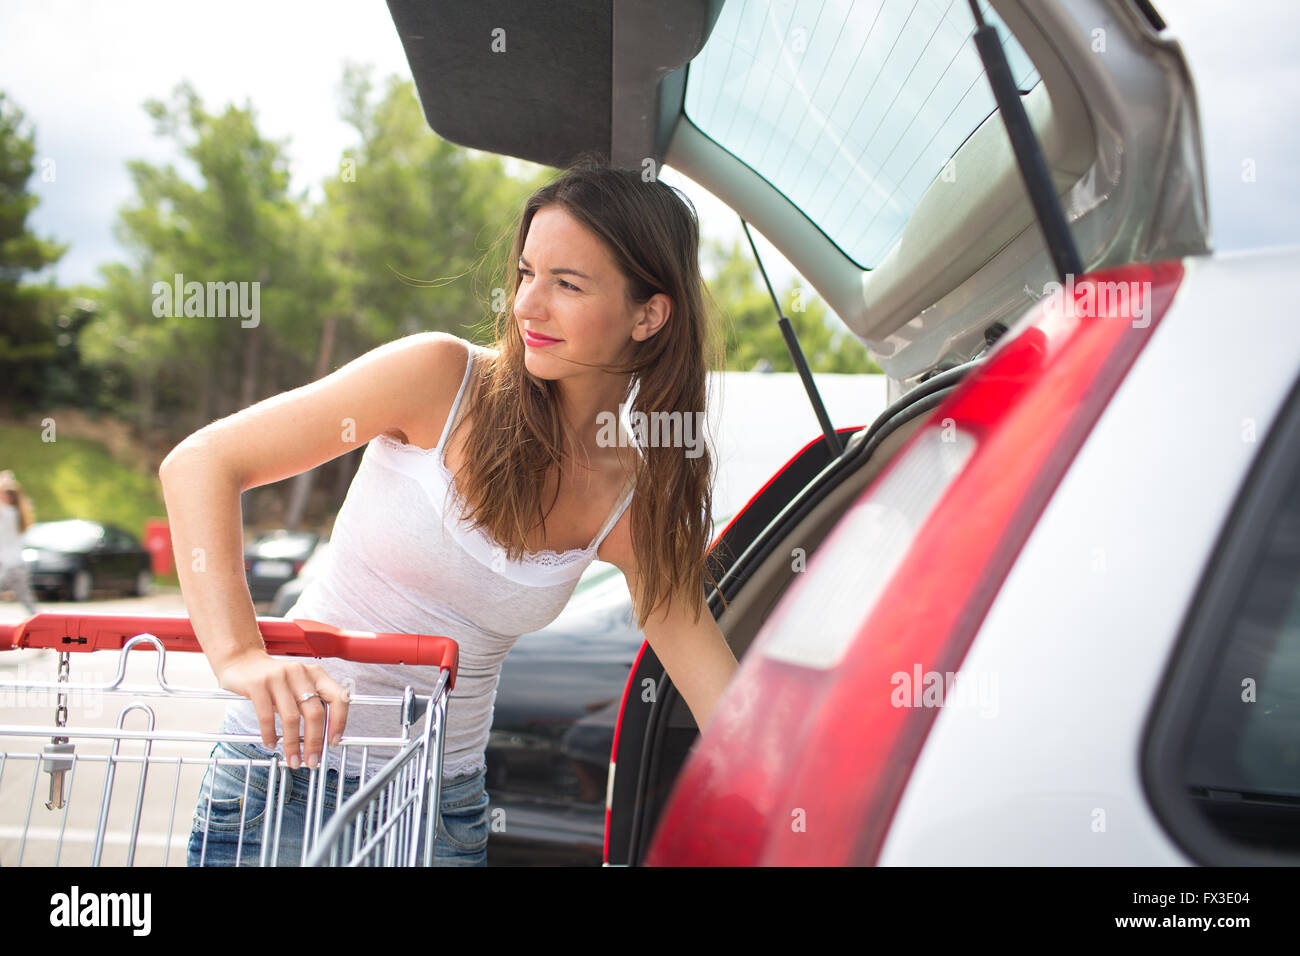 Beautiful young woman shopping in a grocery store/supermarket, putting the groceries she bought in her car (color - Stock Image